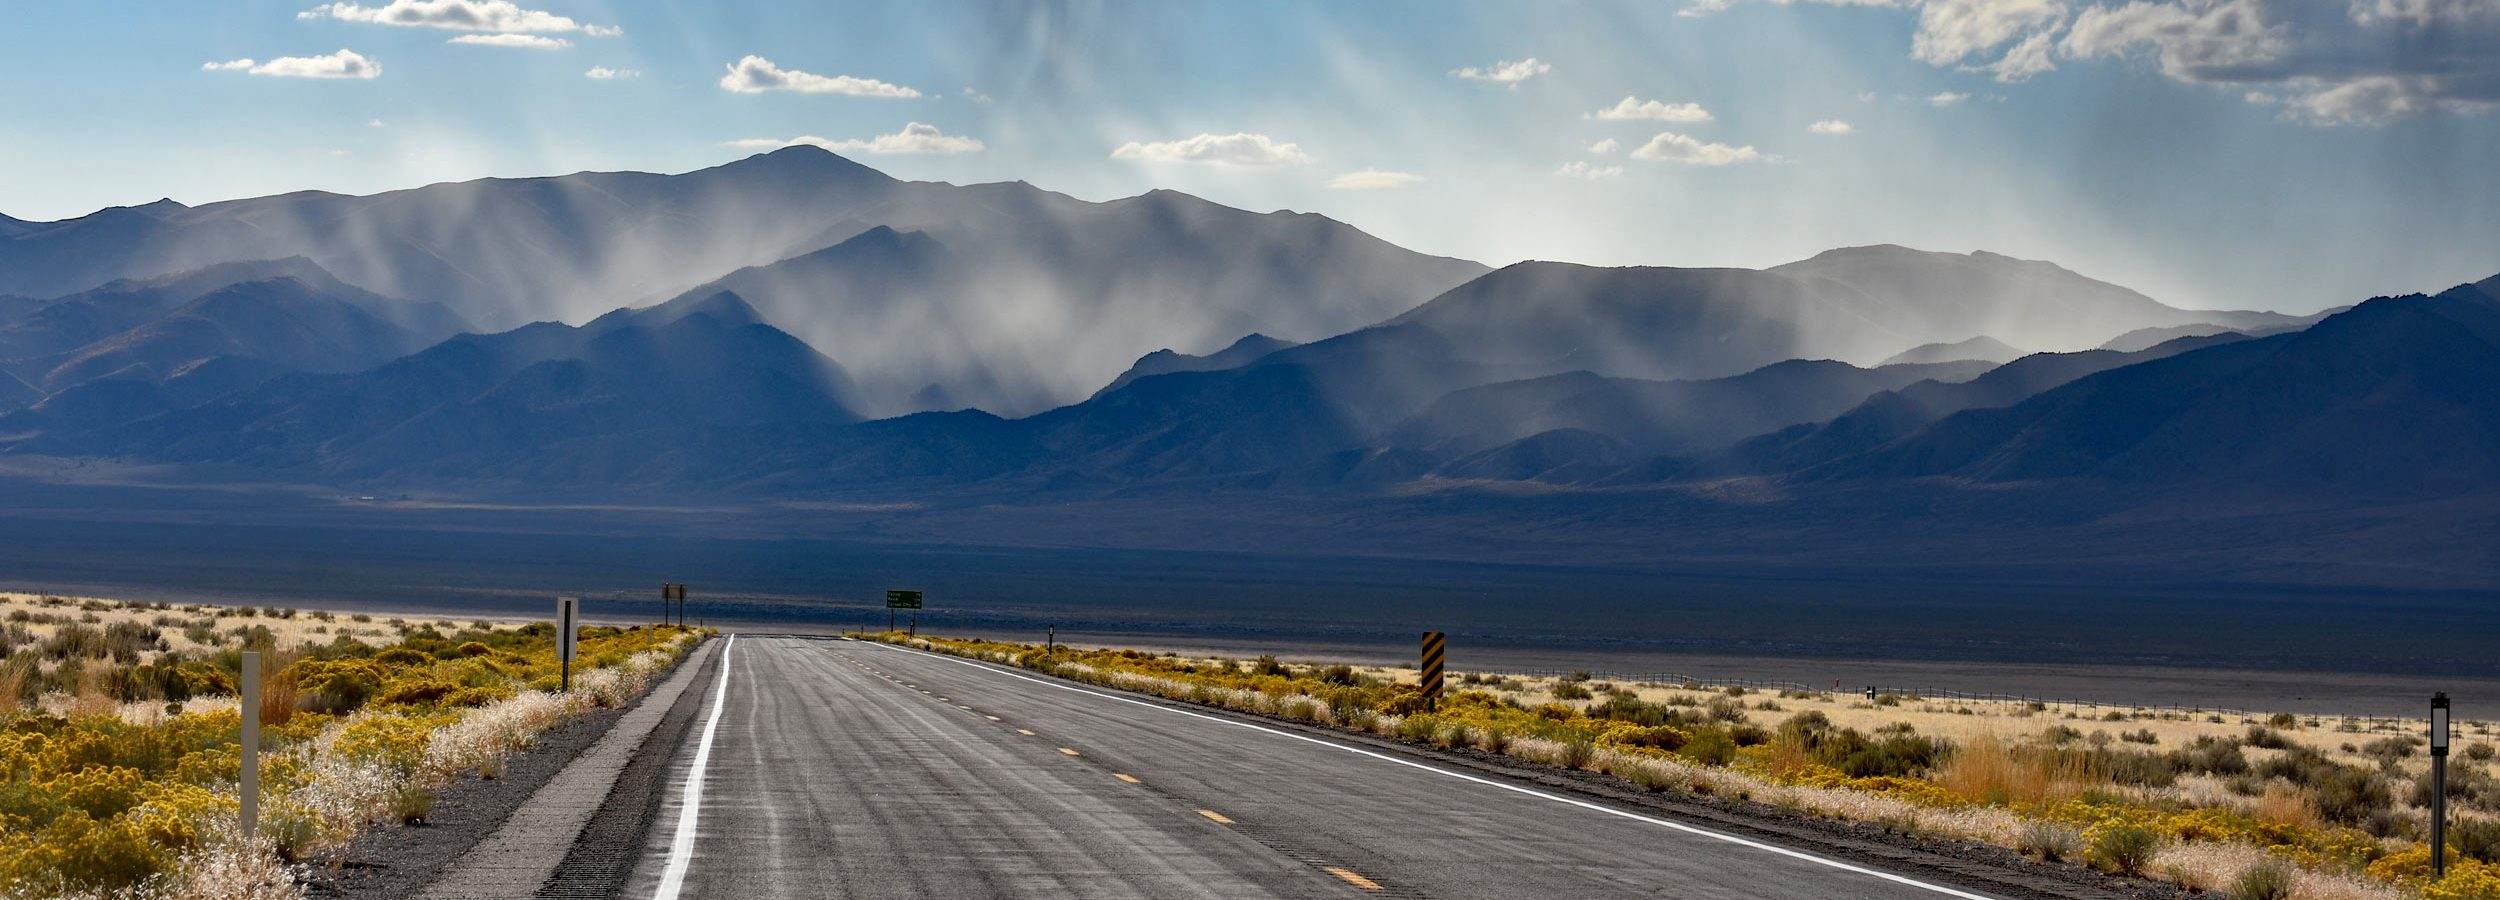 The Loneliest Road in America, Nevada